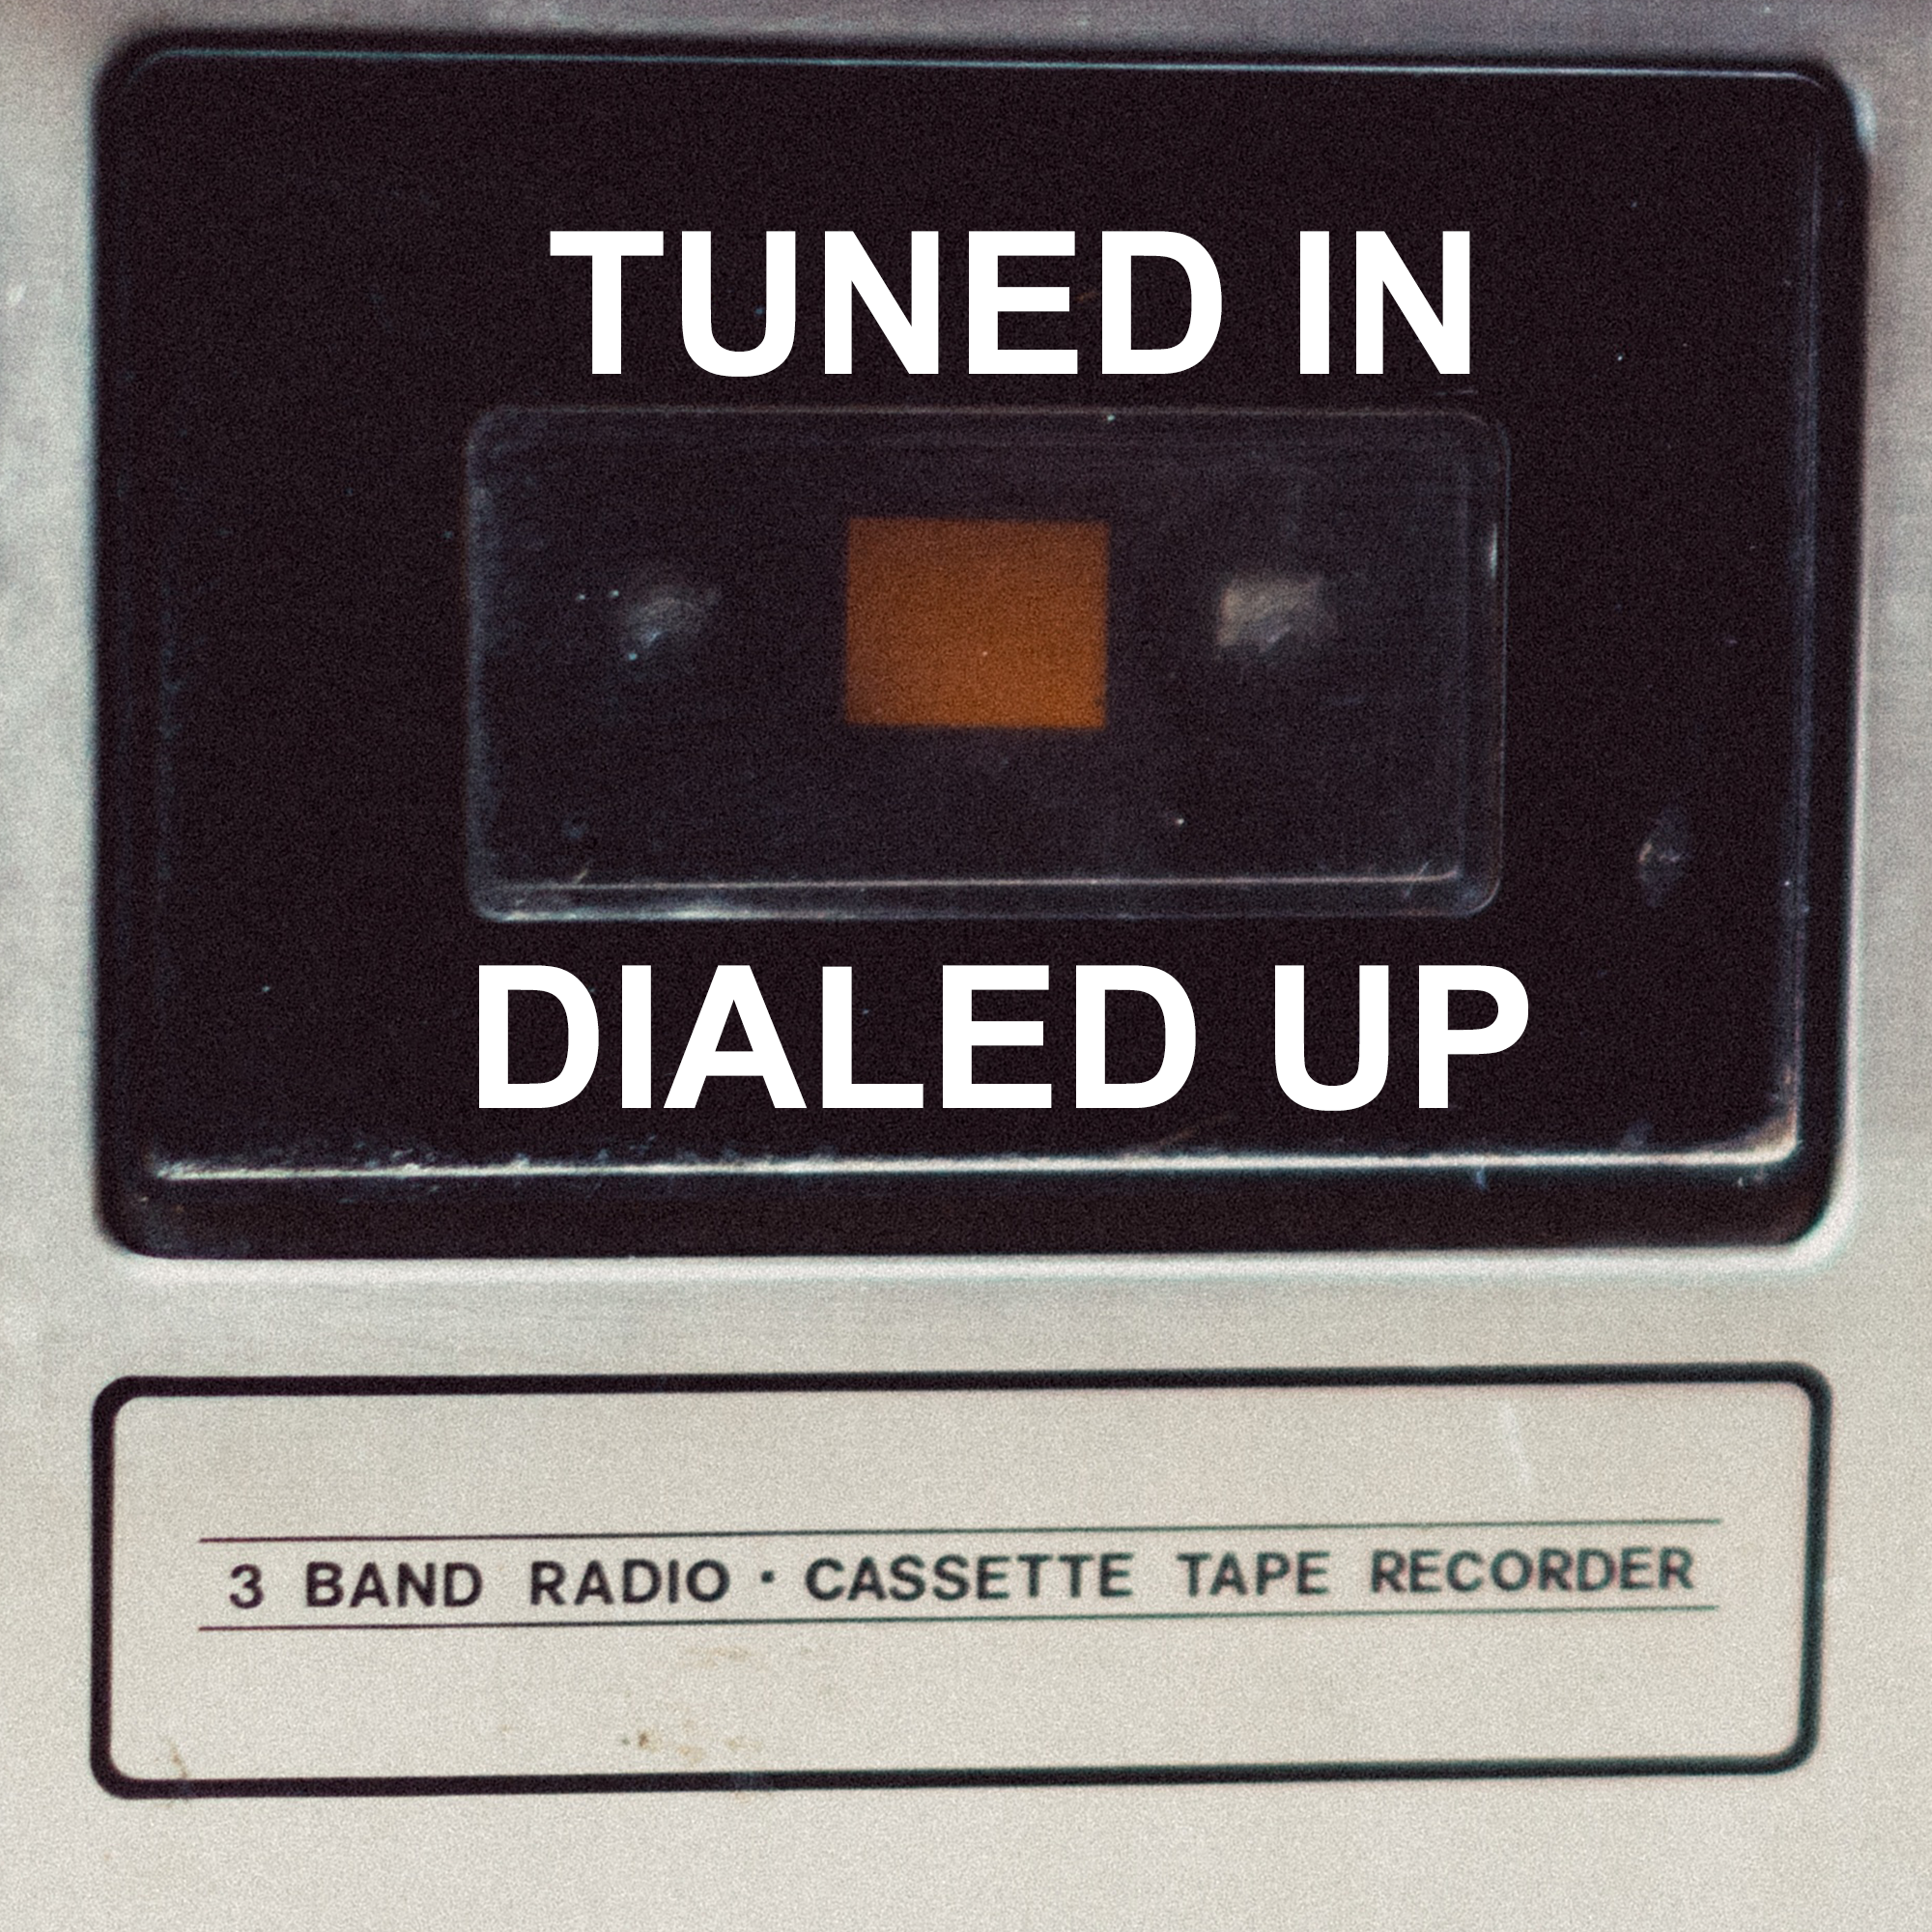 The tuned in dialled up cover art.